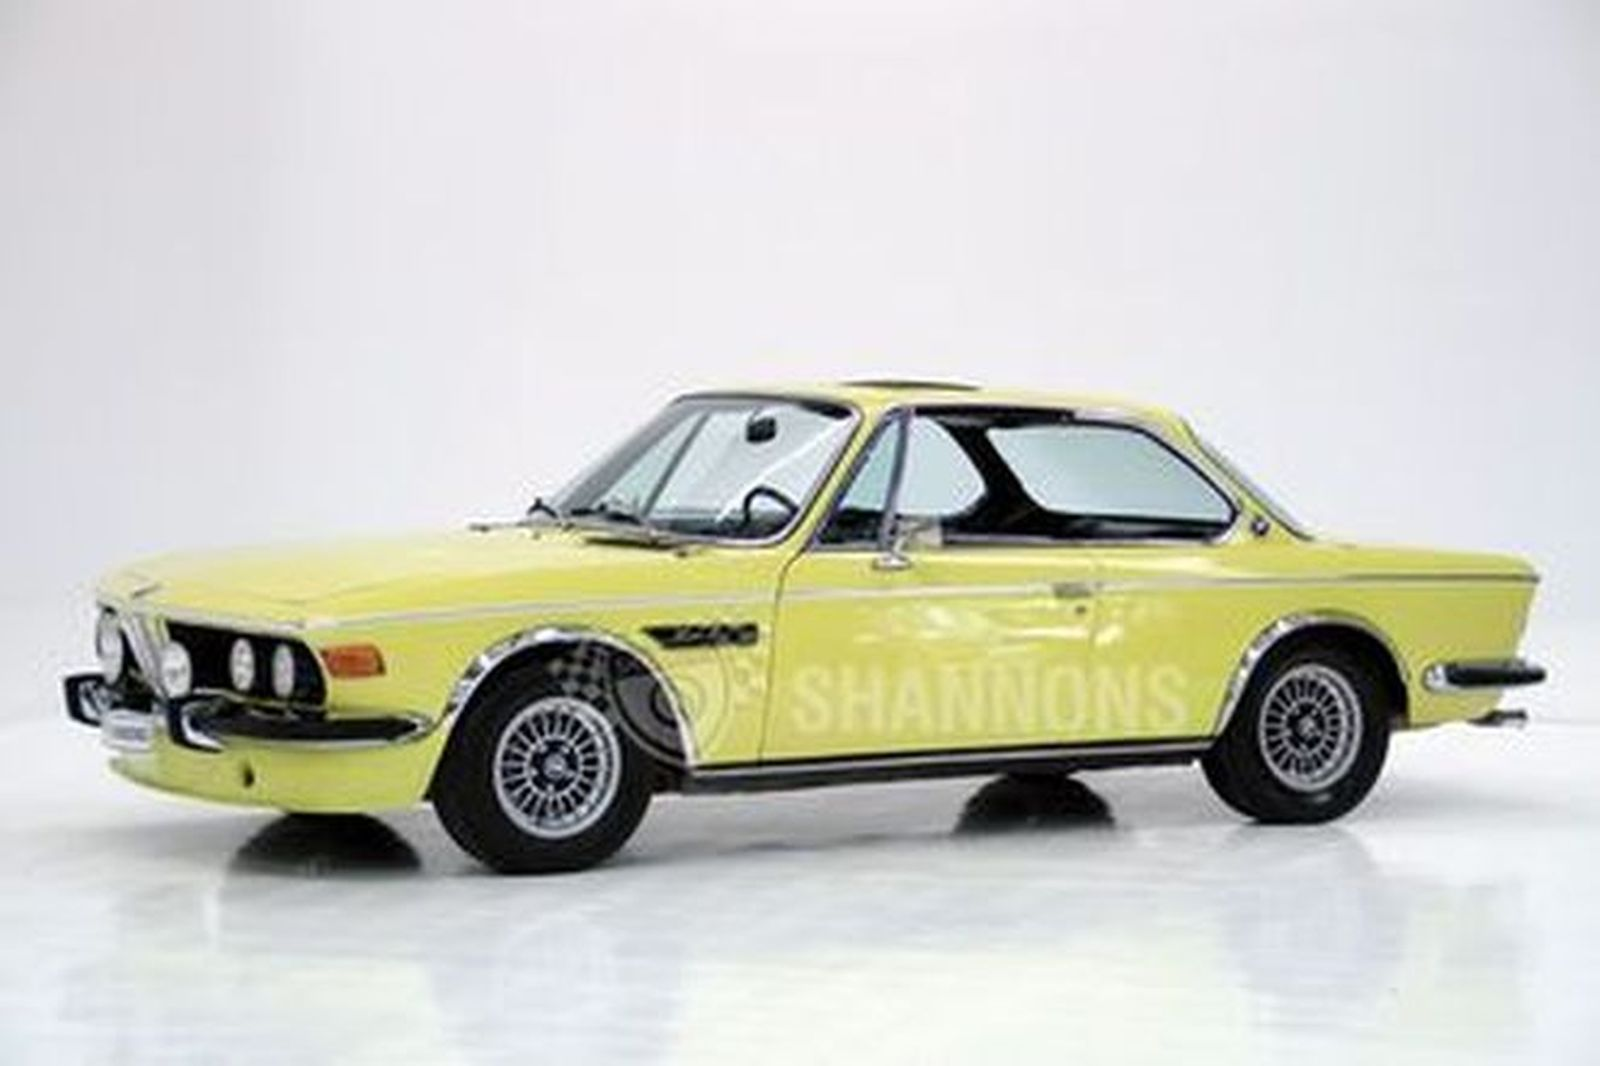 BMW 3.0 Csl >> Sold Bmw 3 0csl E9 Coupe Lhd Auctions Lot 71 Shannons